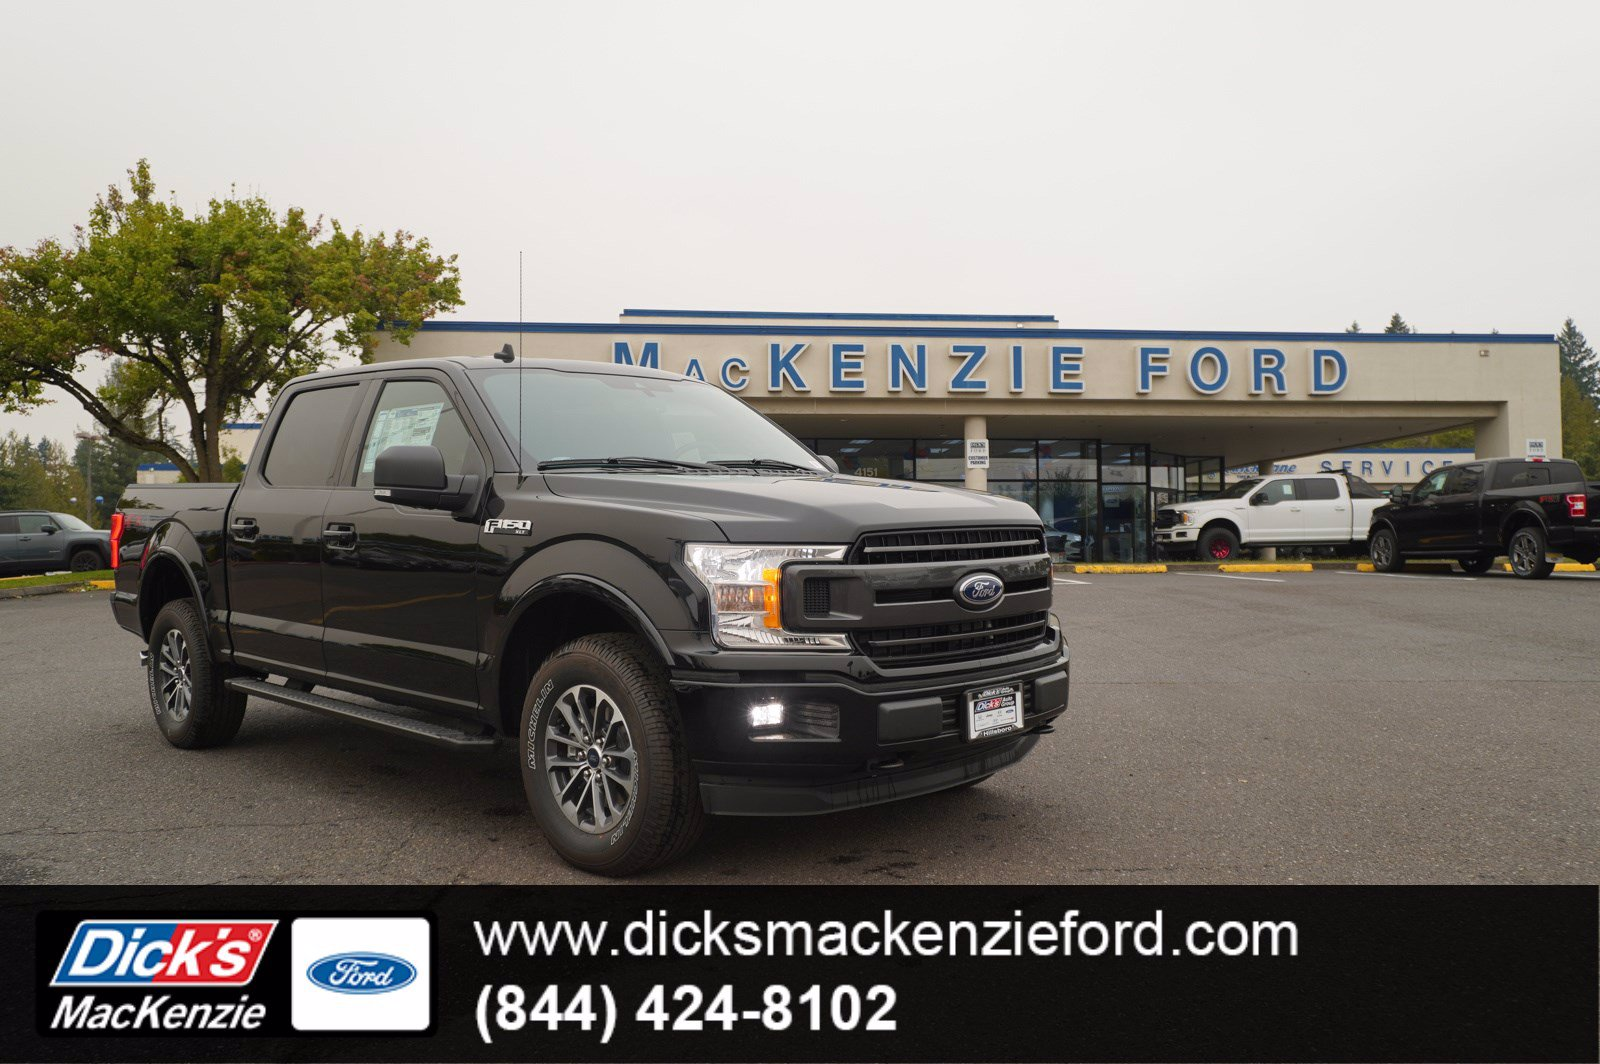 2020 Ford F-150 SuperCrew Cab 4x4, Pickup #209556 - photo 1